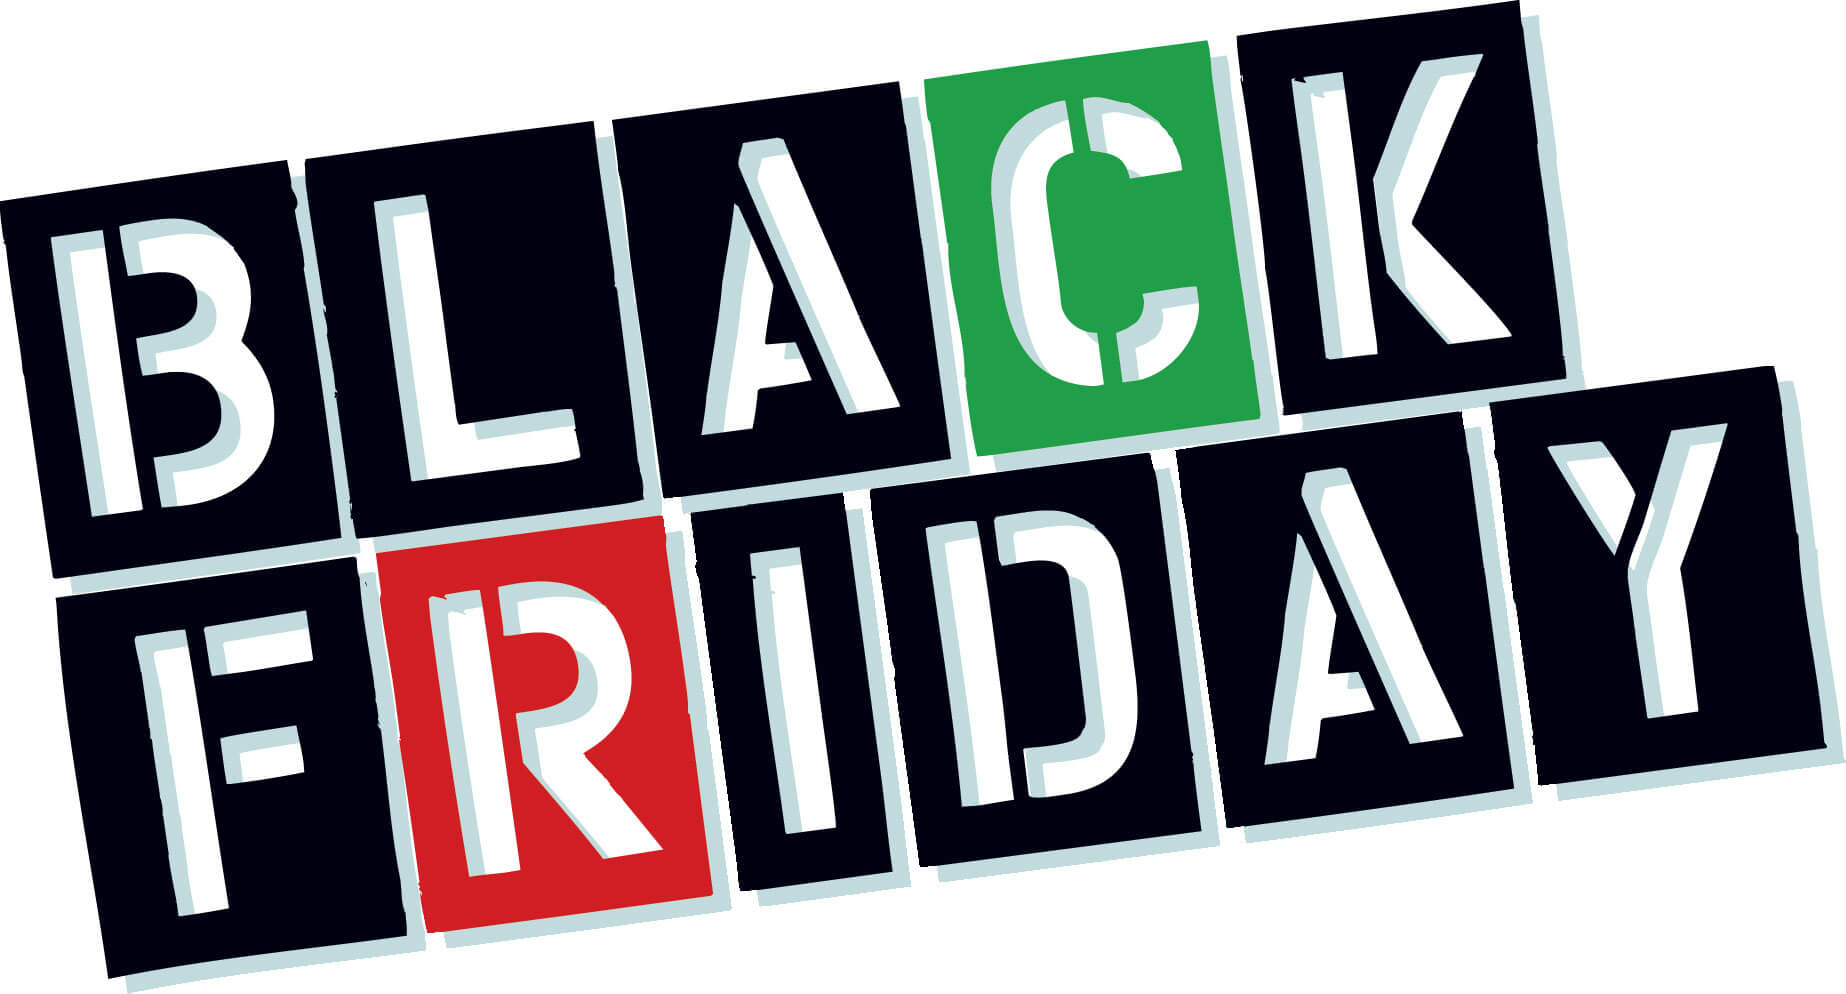 Back Friday St Maarten Black Friday Sales St Maarten Villas